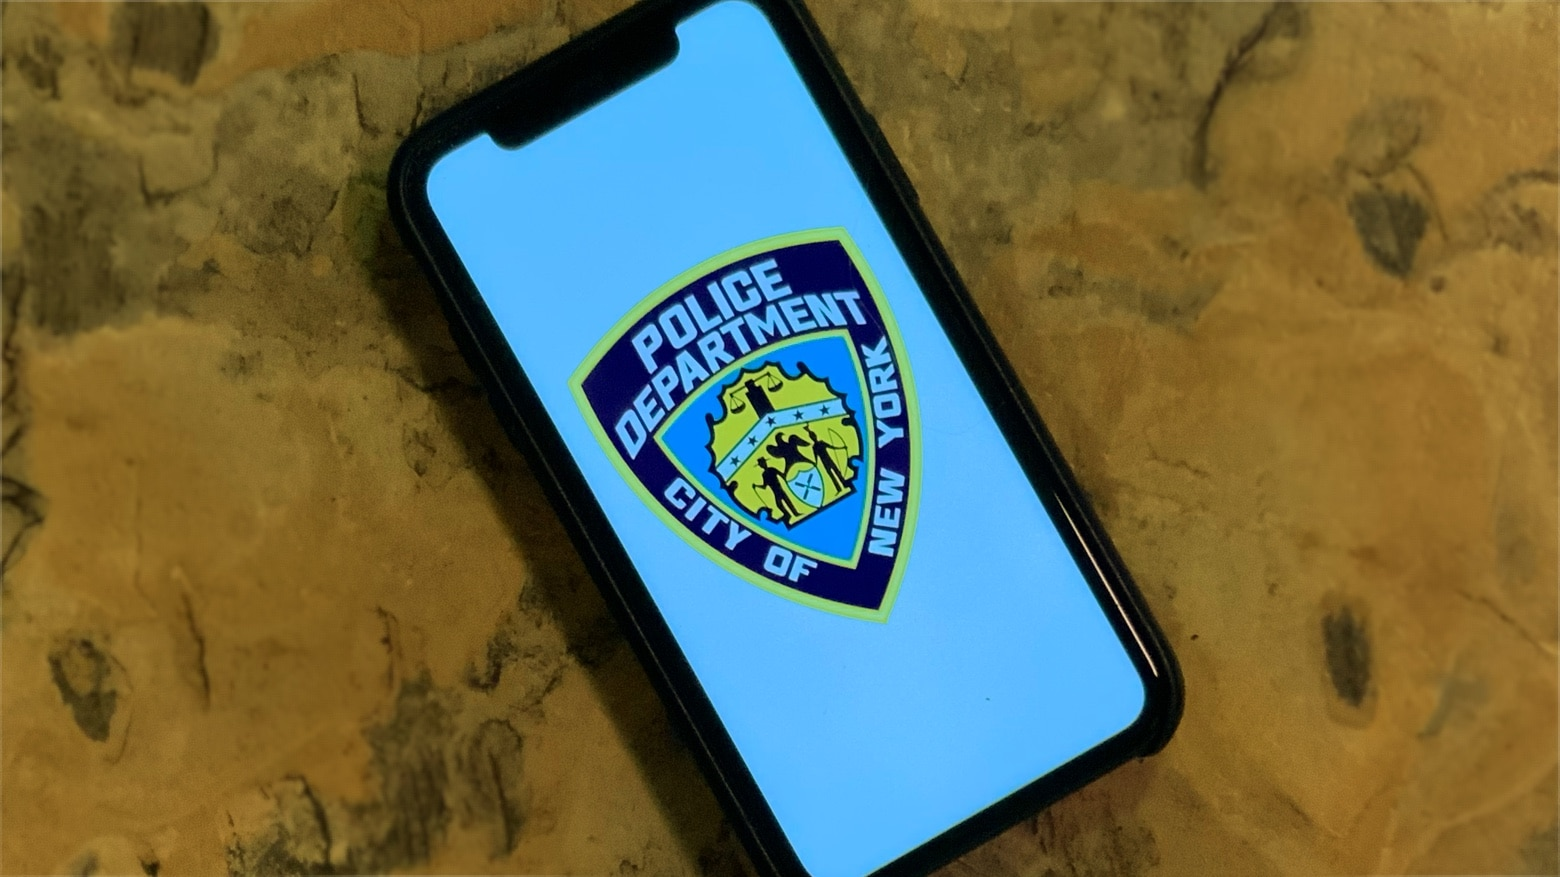 The NYPD already issues police officers iPhones.